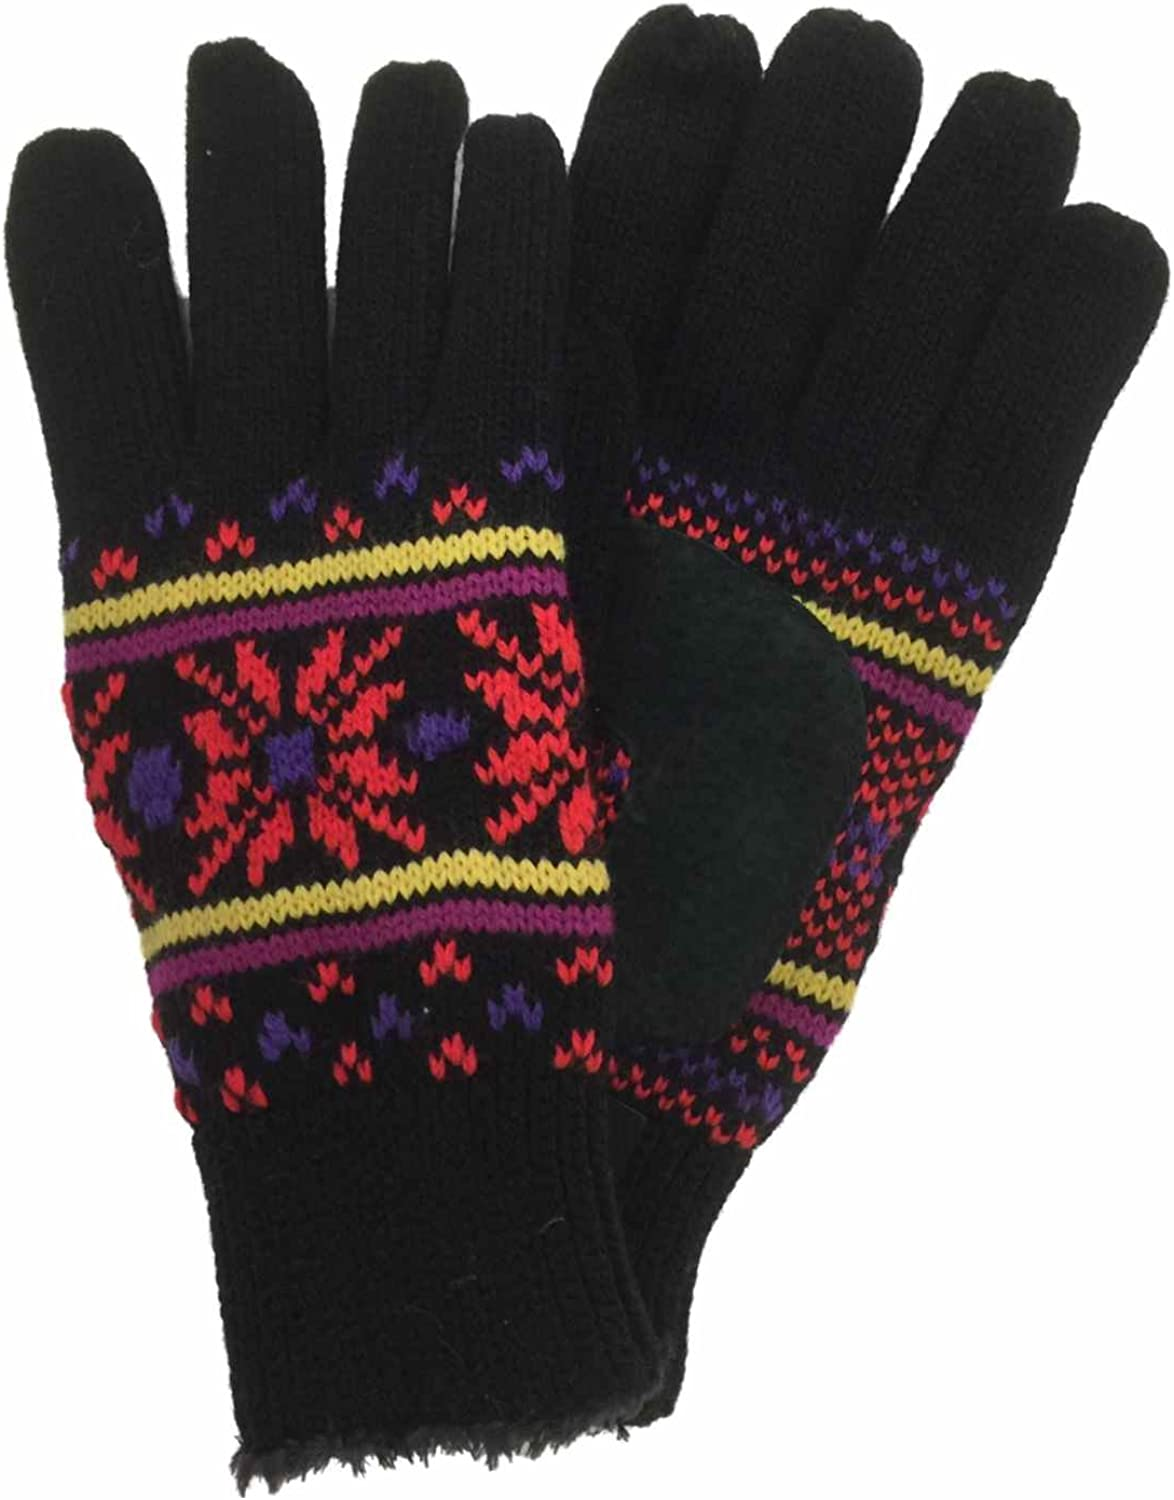 Isotoner Womens Black & Red Snowflake Knit Gloves with Microluxe Lining